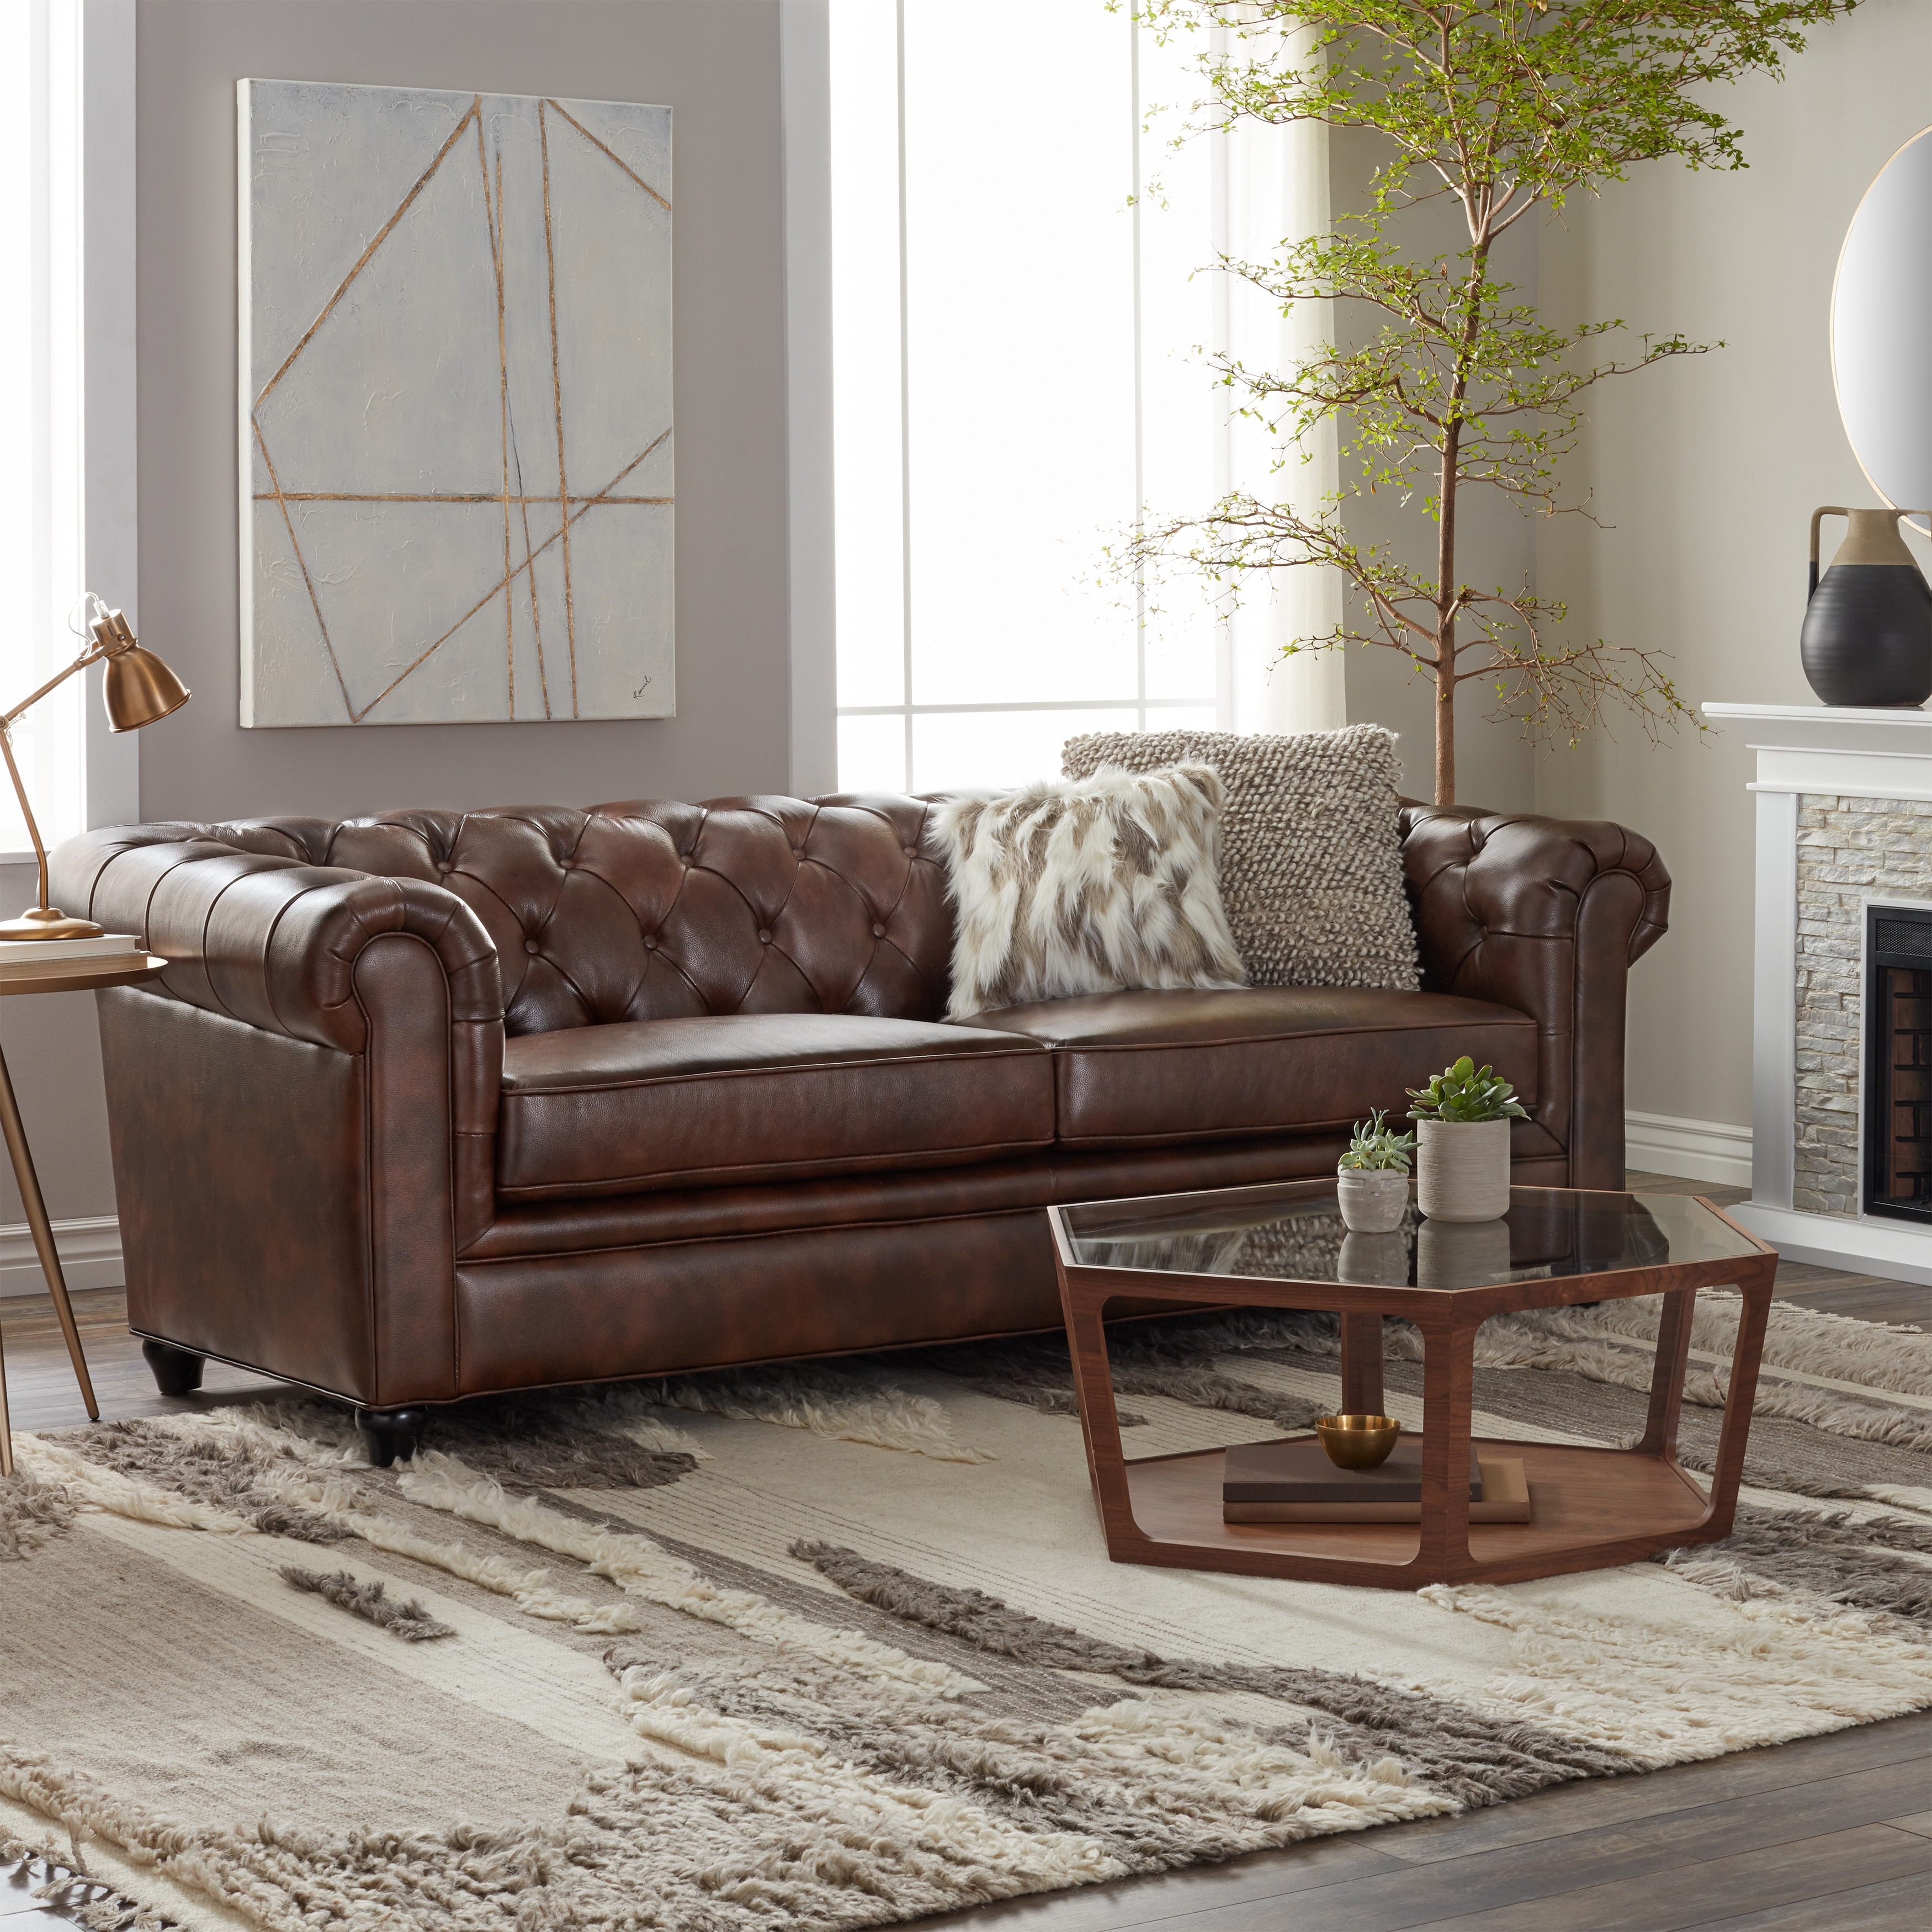 Chesterfield Sofa abbyson tuscan top grain leather chesterfield sofa free shipping